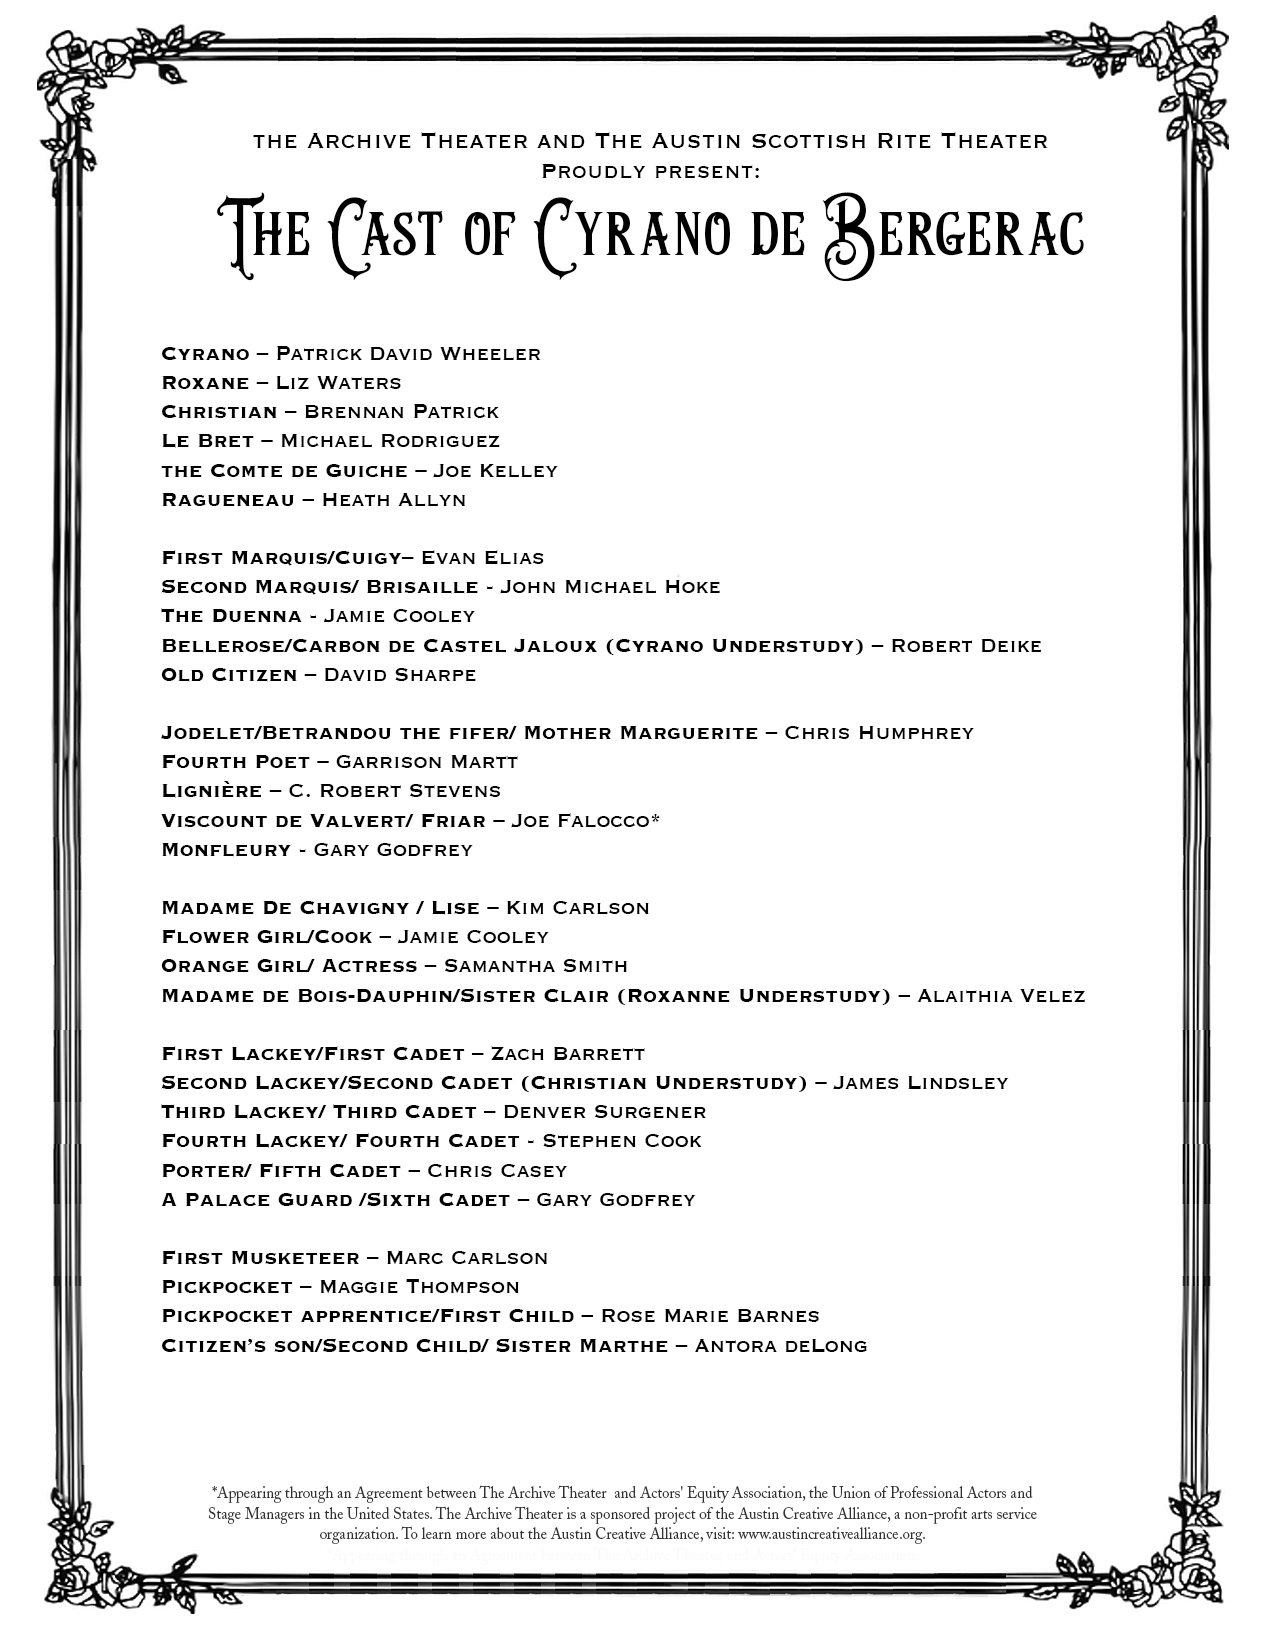 The Cast of Cyrano de Bergerac.jpg